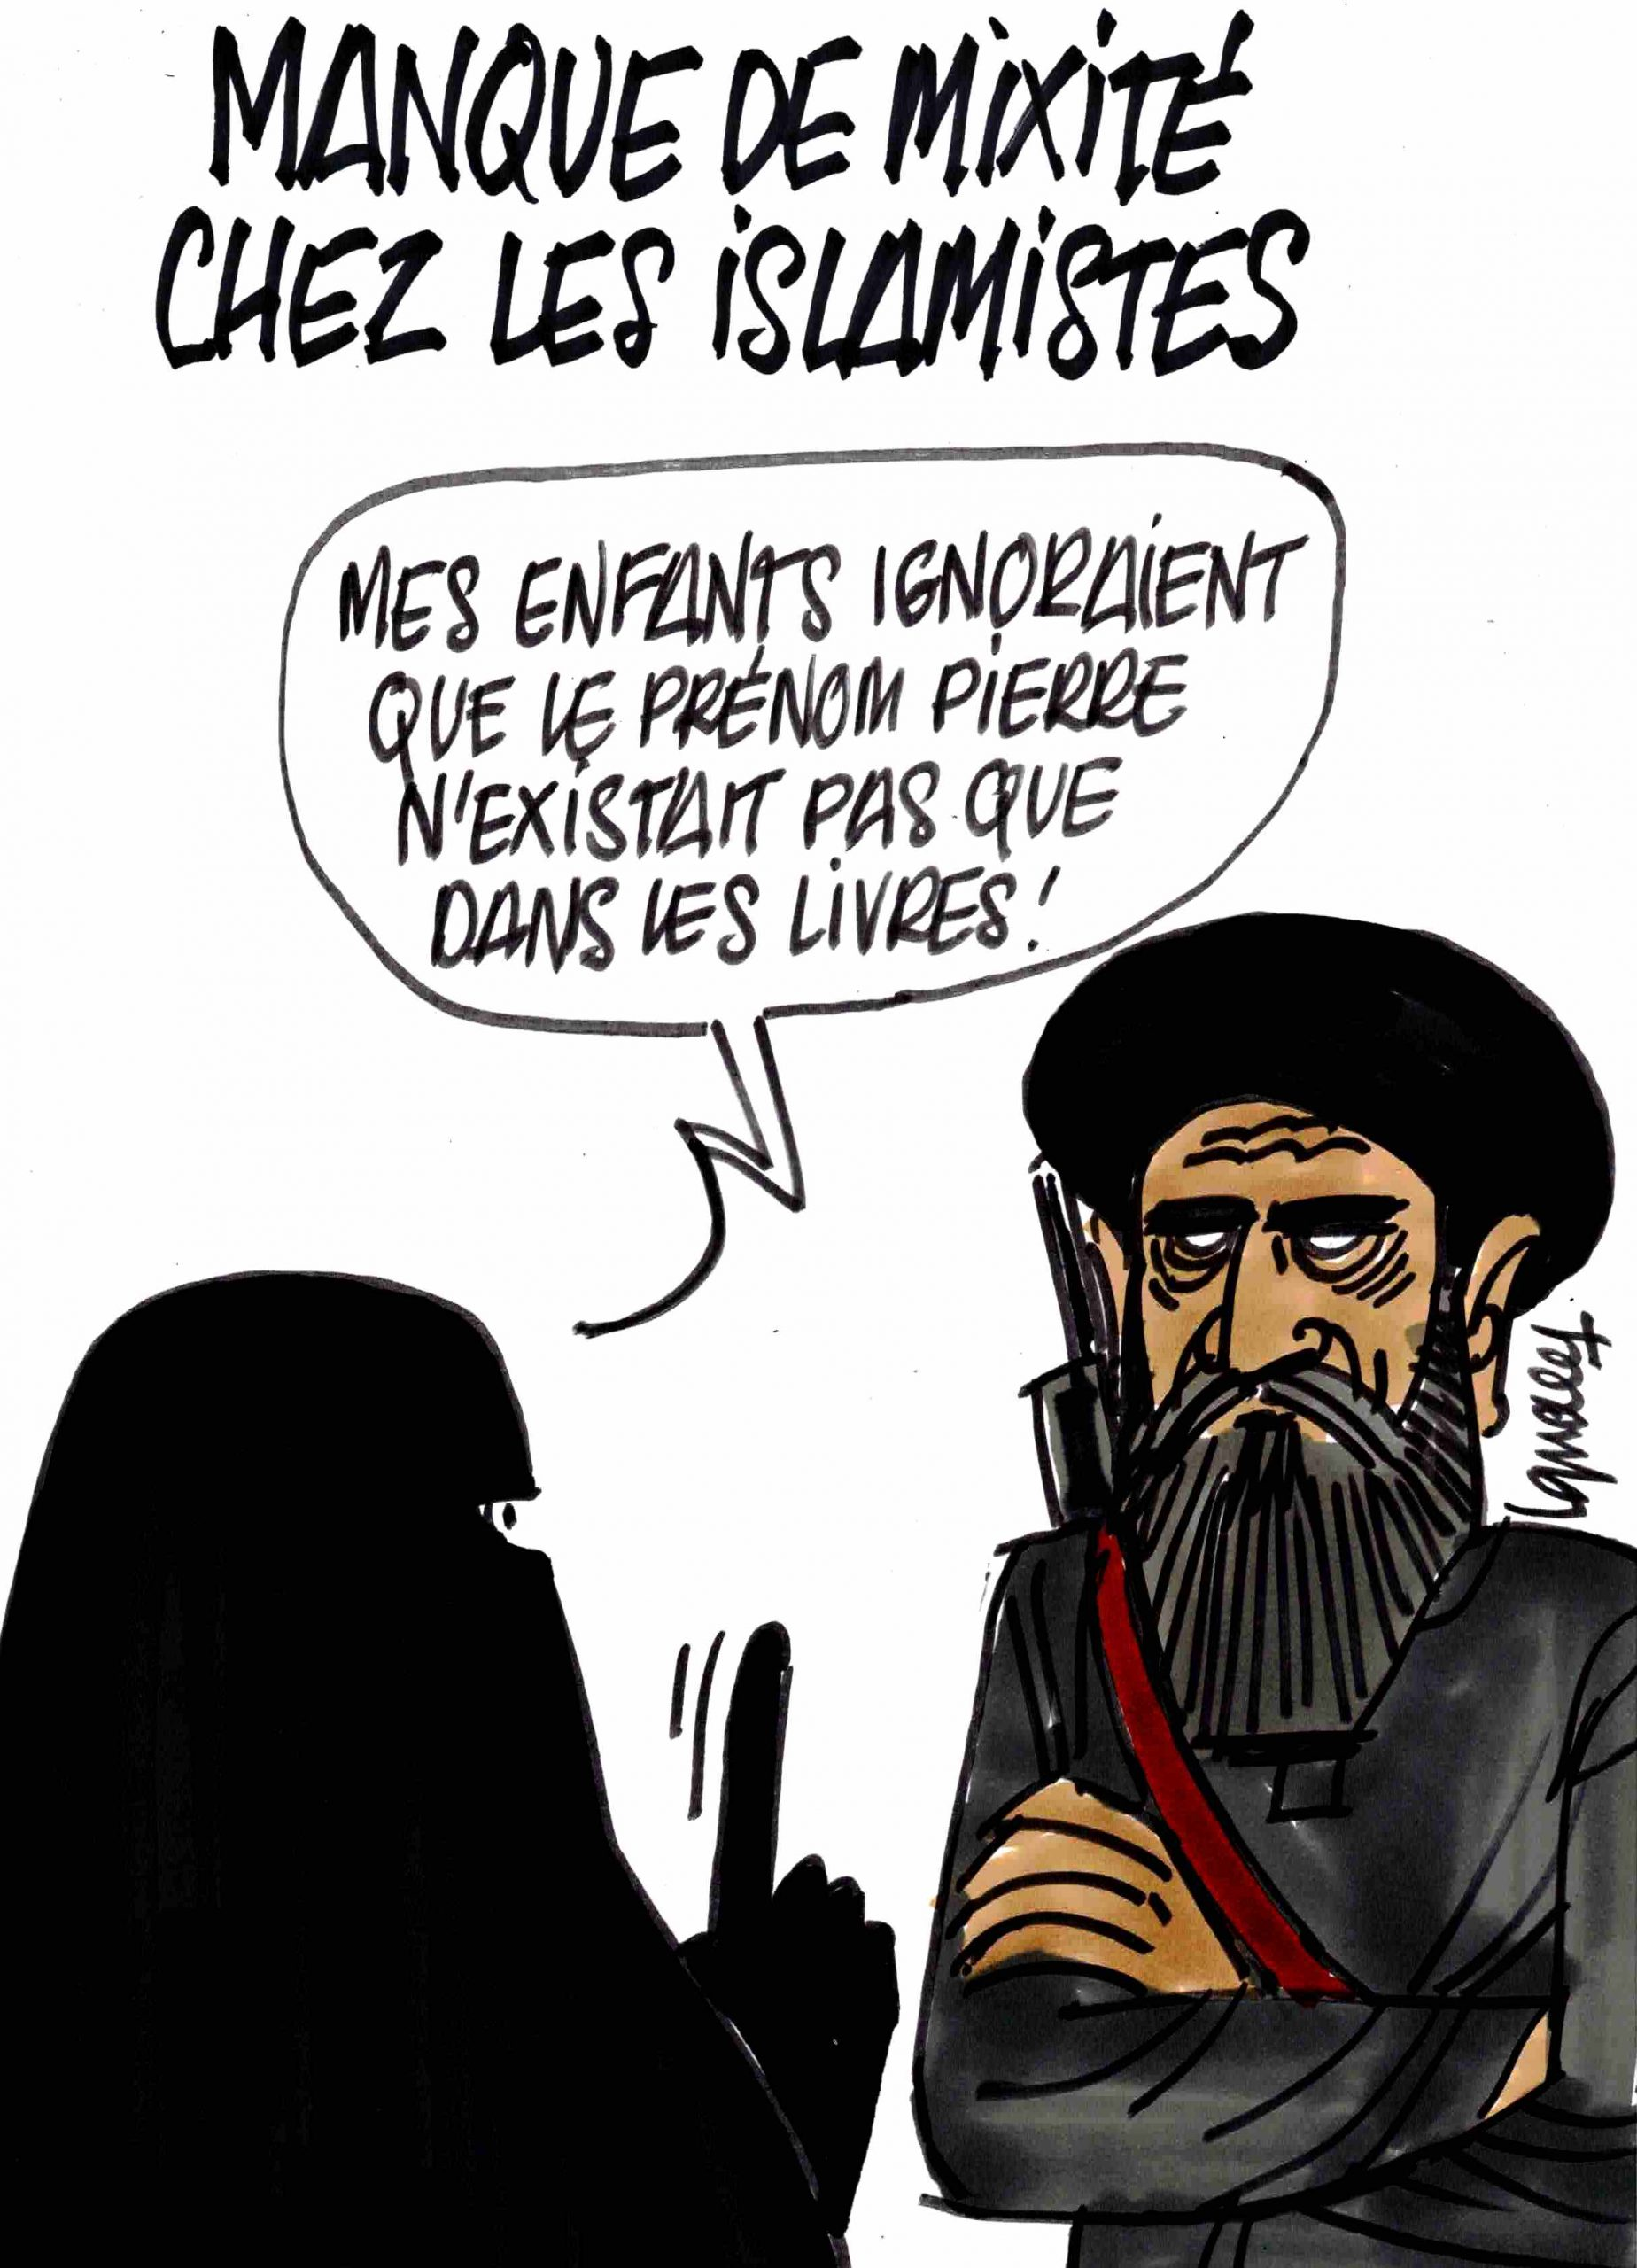 Ignace - Manque de mixité chez les islamistes